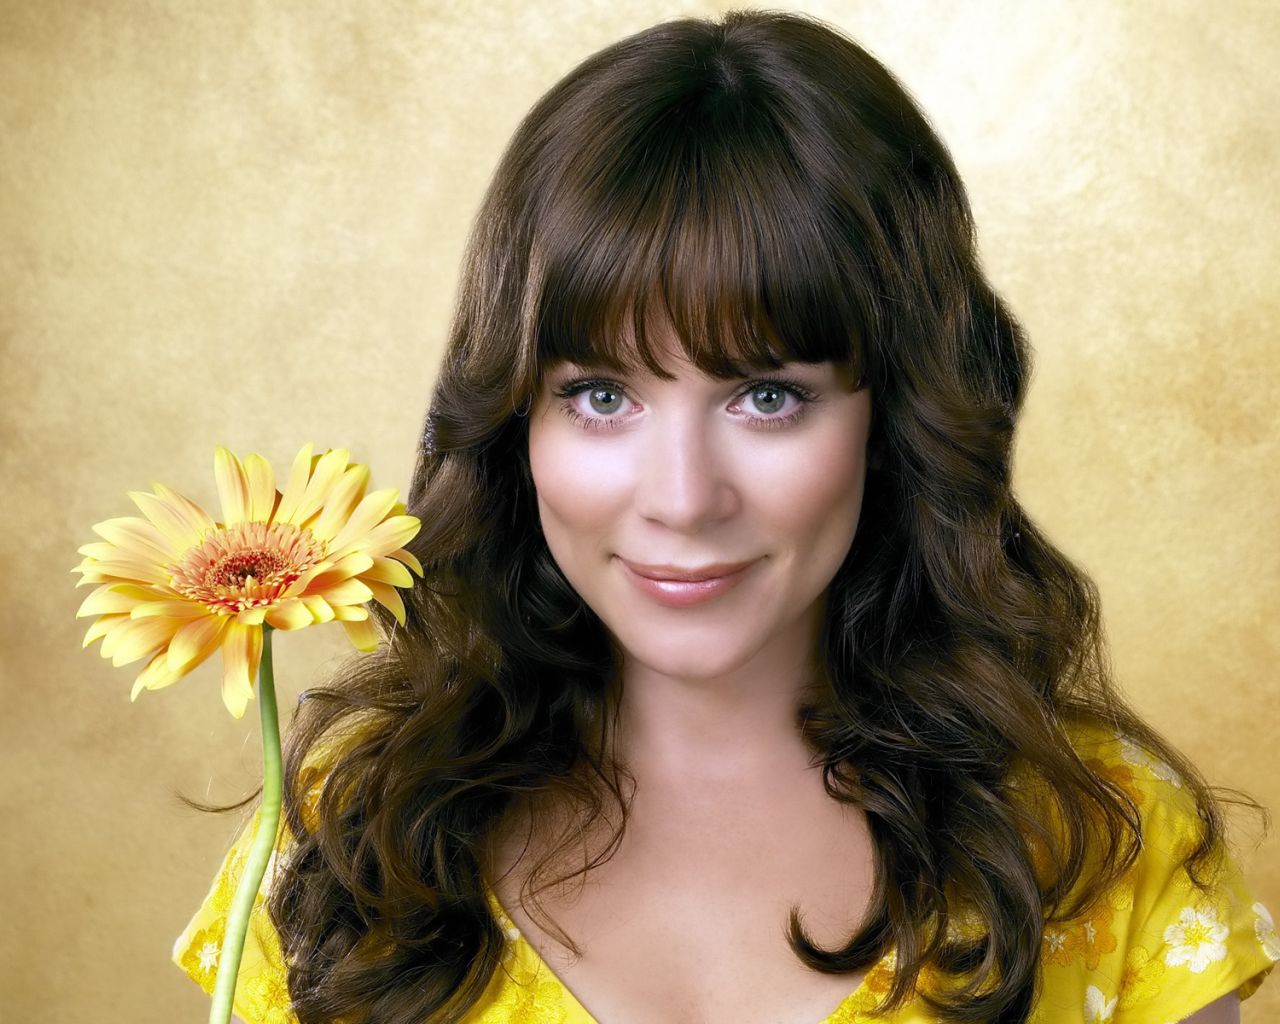 Best Hollywood Actress HD Wallpapers | Top HD Wallpapers